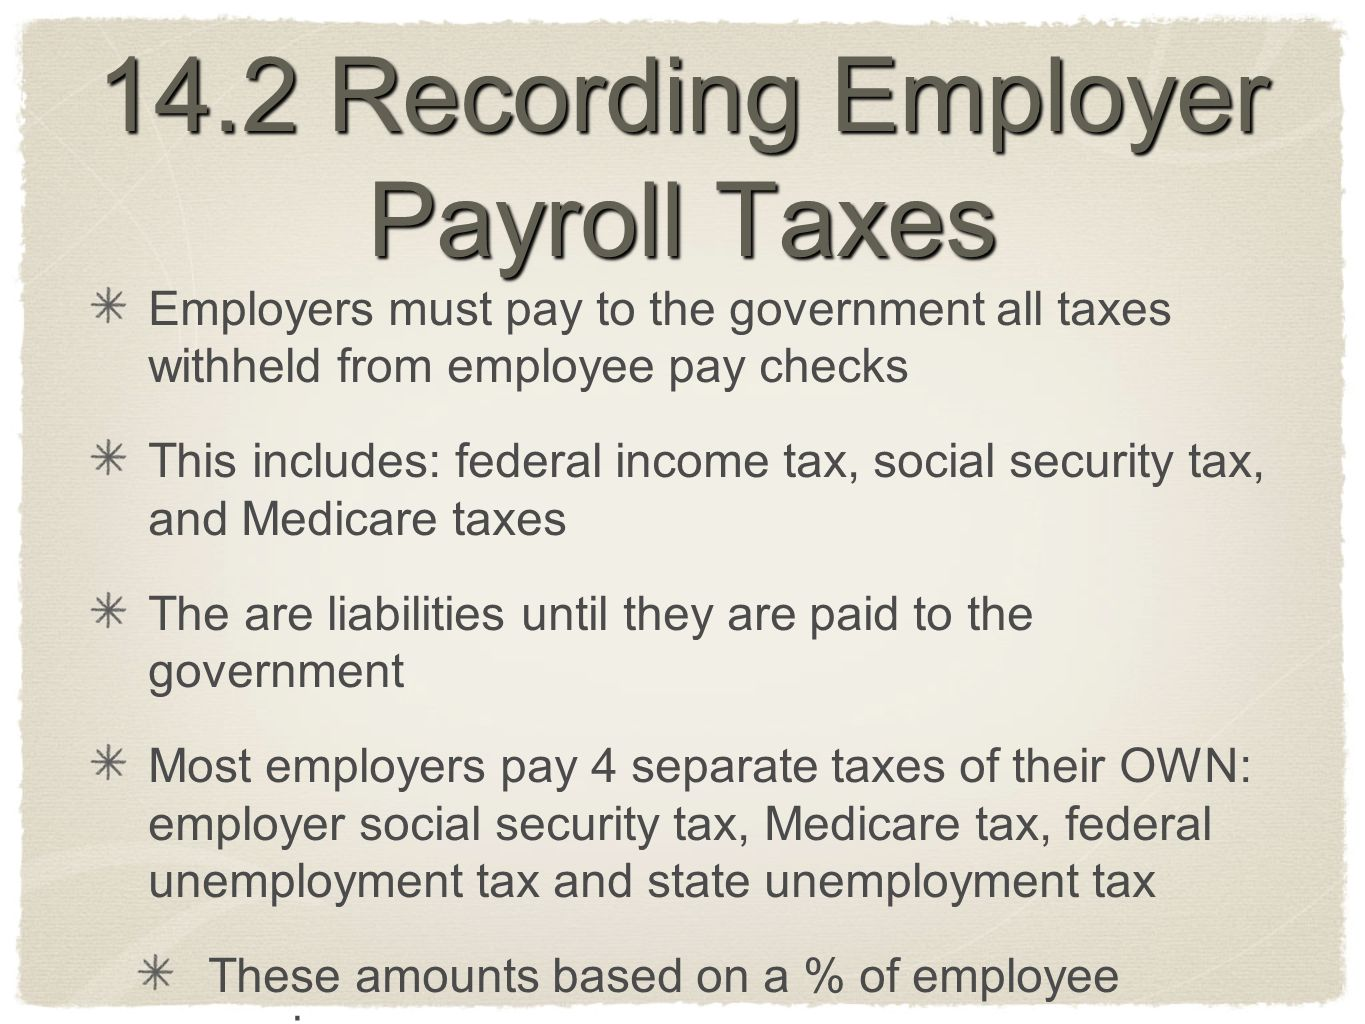 14.2 Recording Employer Payroll Taxes